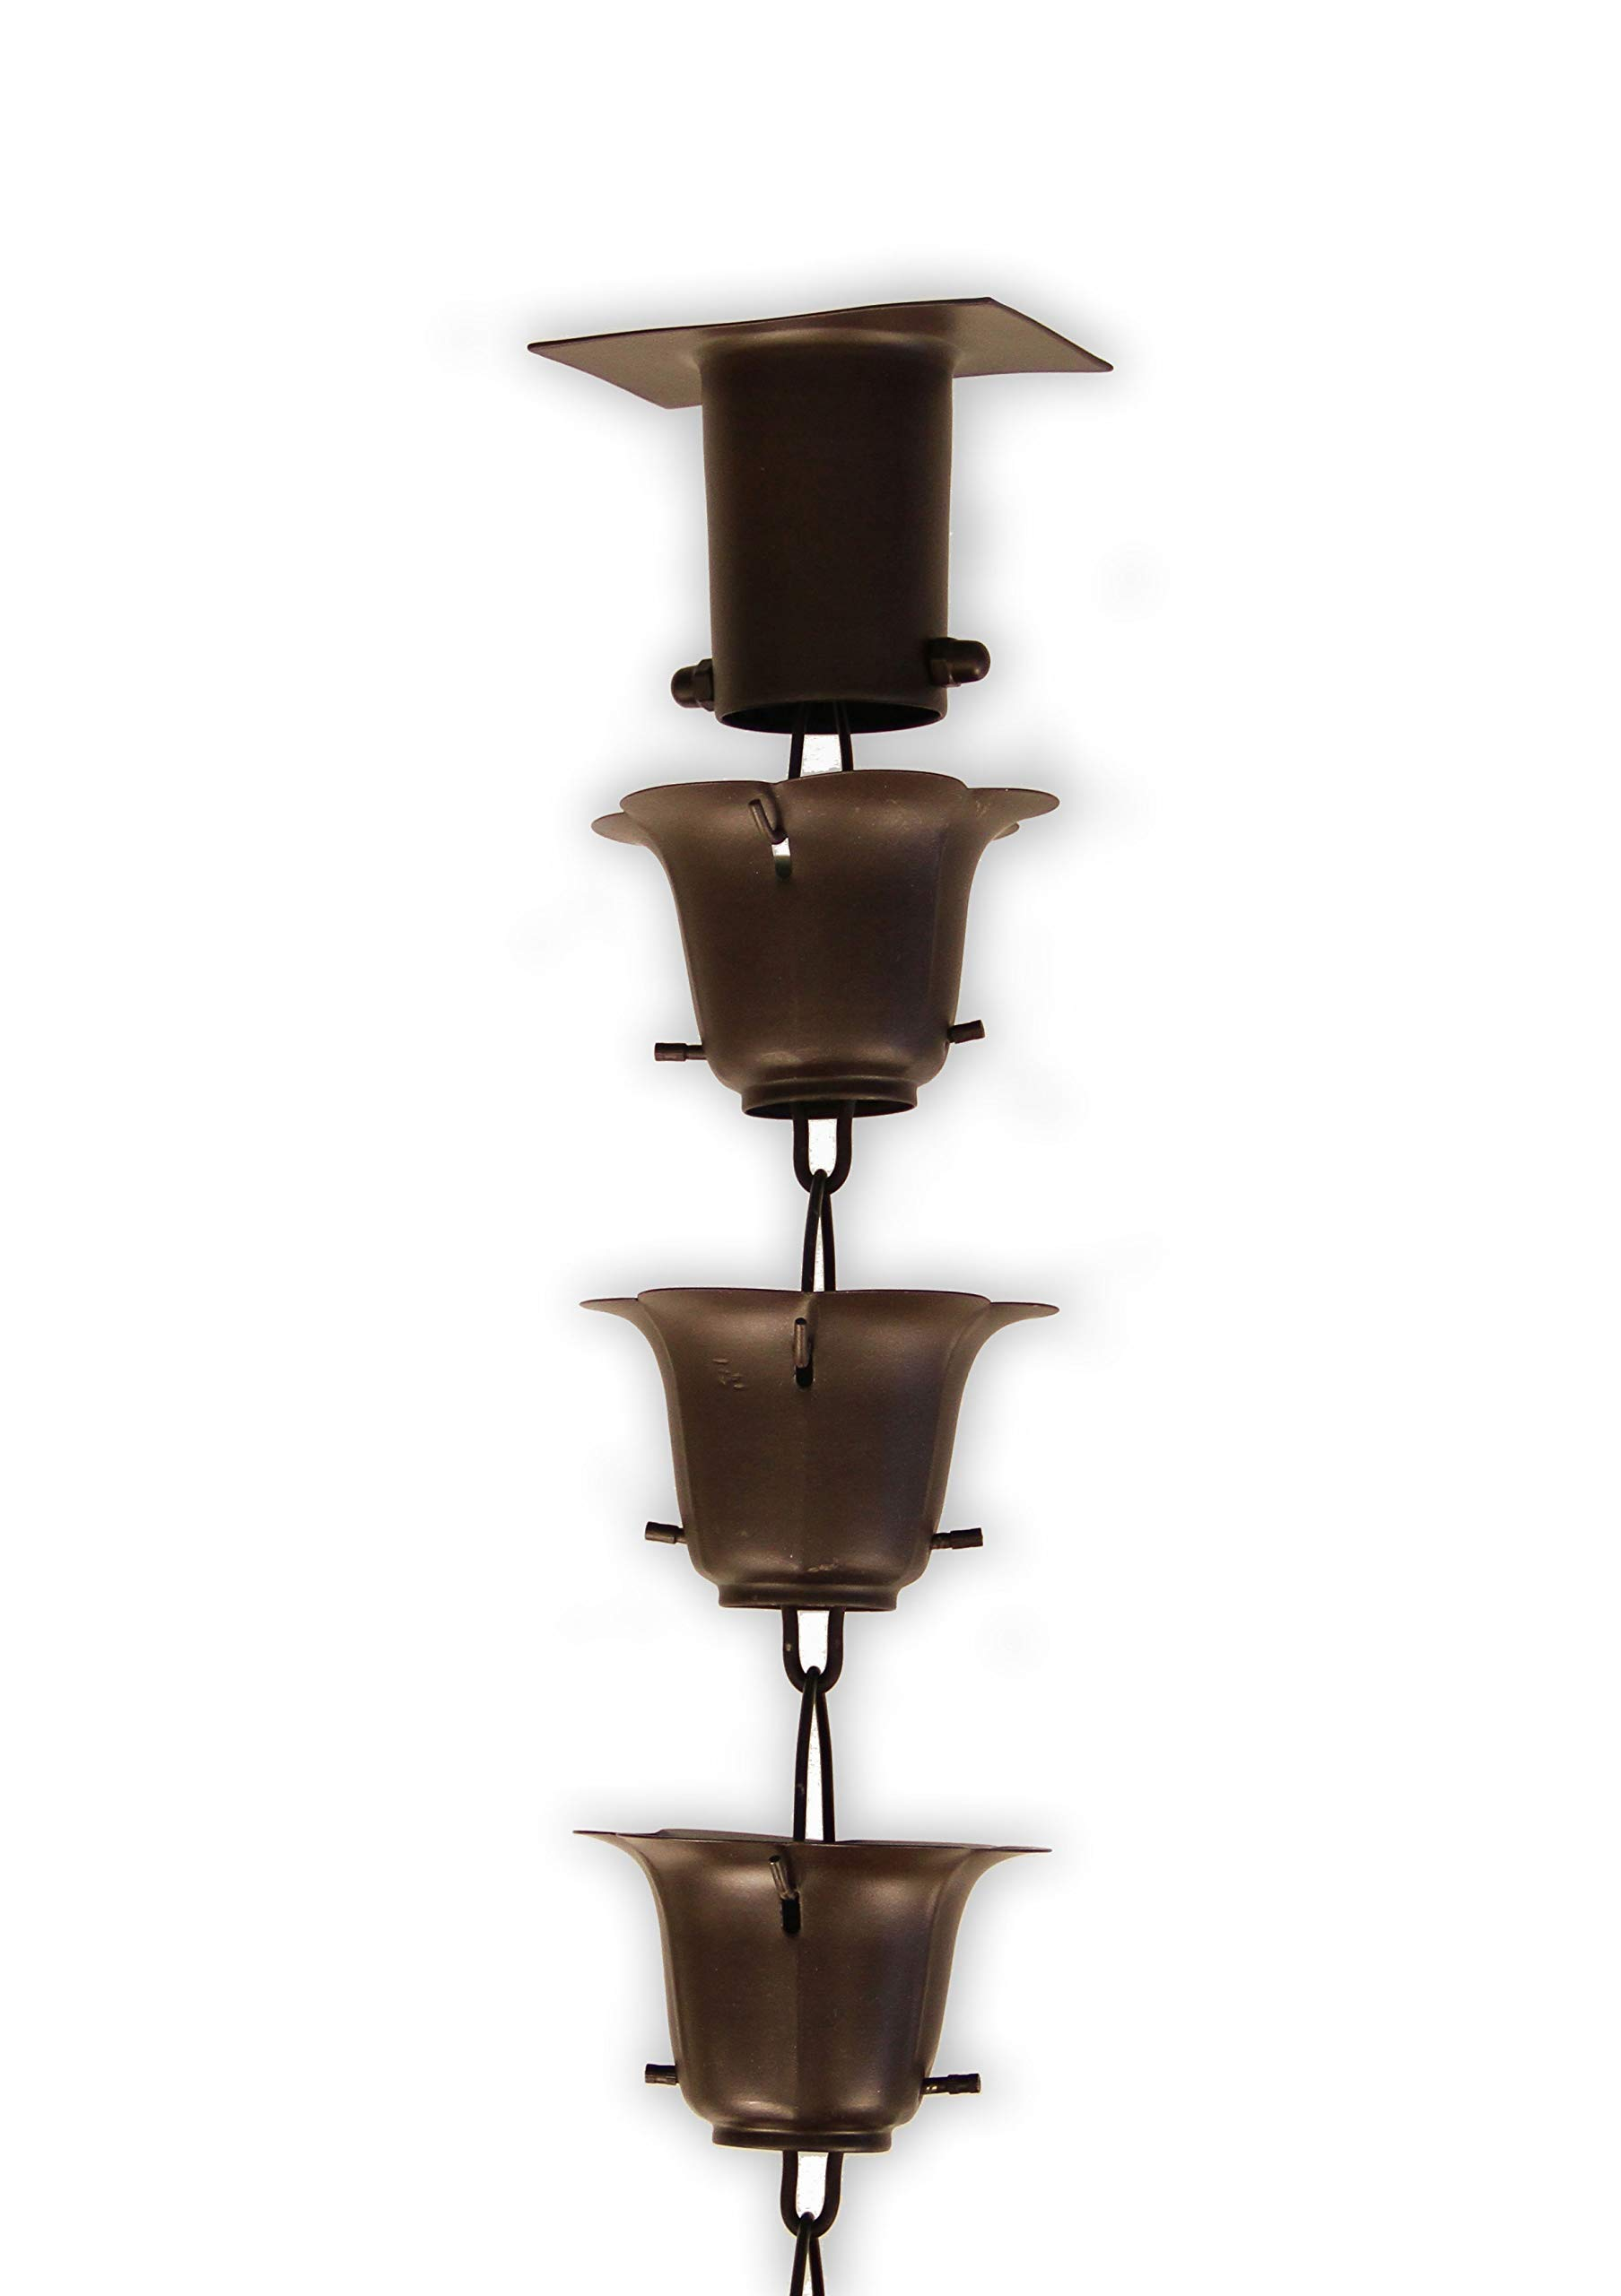 Rainchains, Inc. Bronze Iron Flower Cup RAIN Chain with Installation KIT (9 Feet)